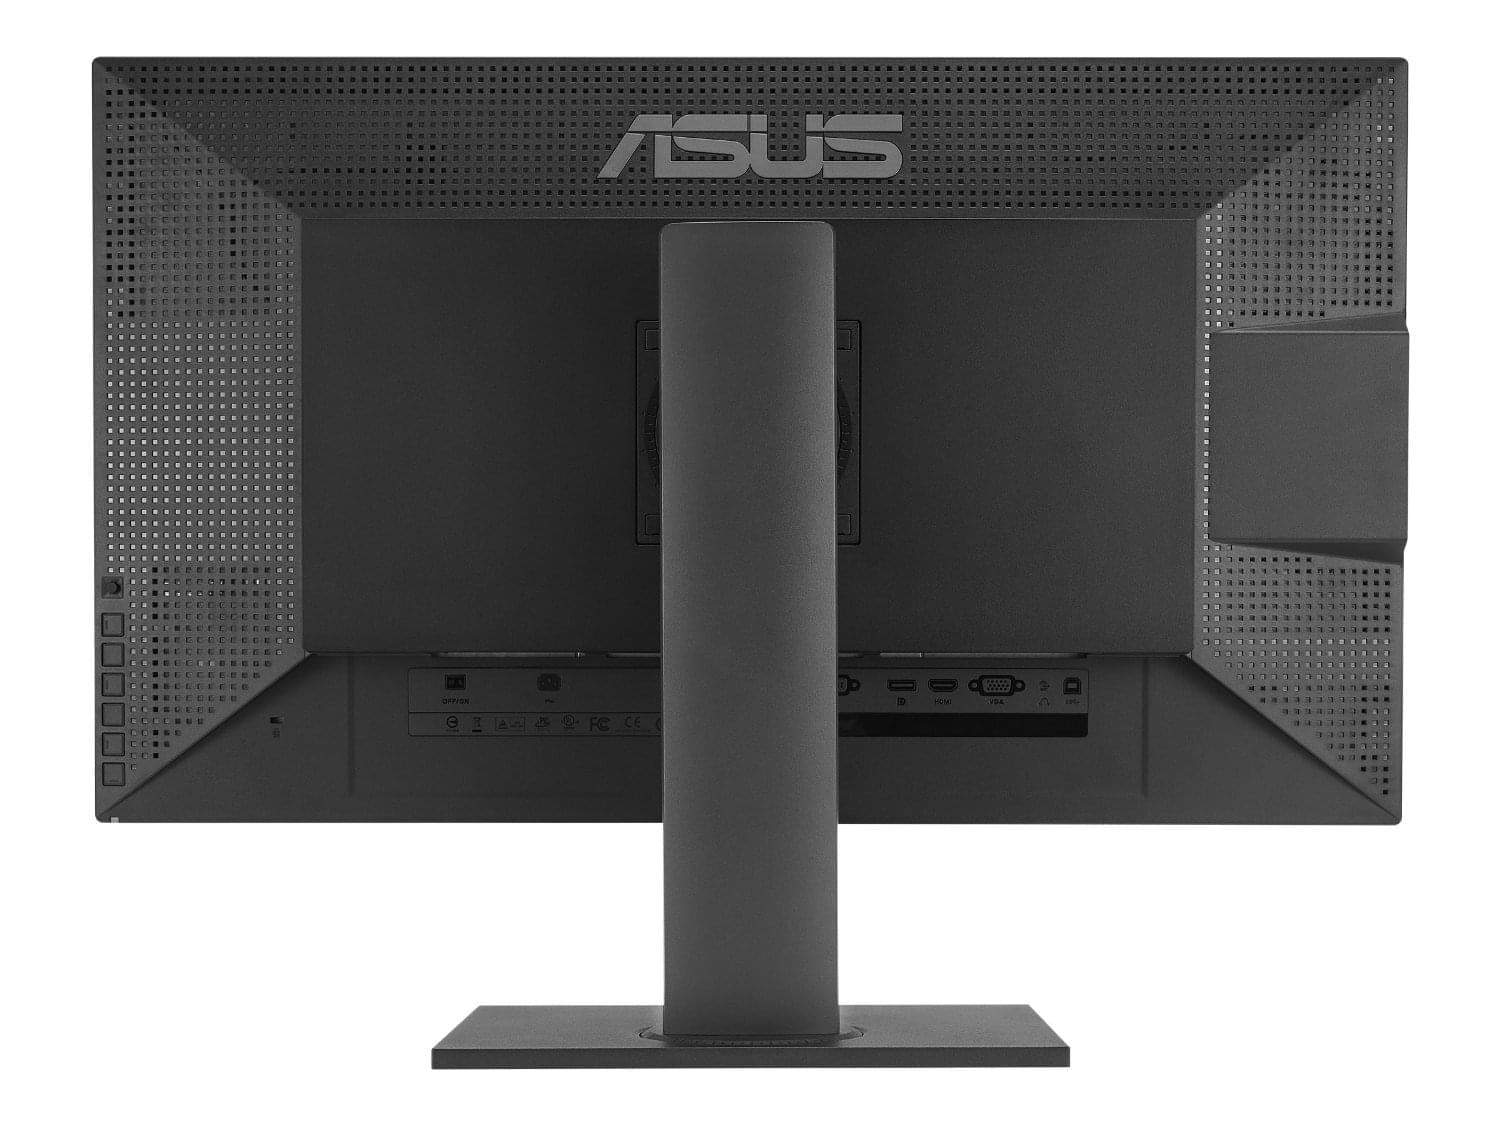 ASUS 32 inch WQHD 4K monitor deal 6